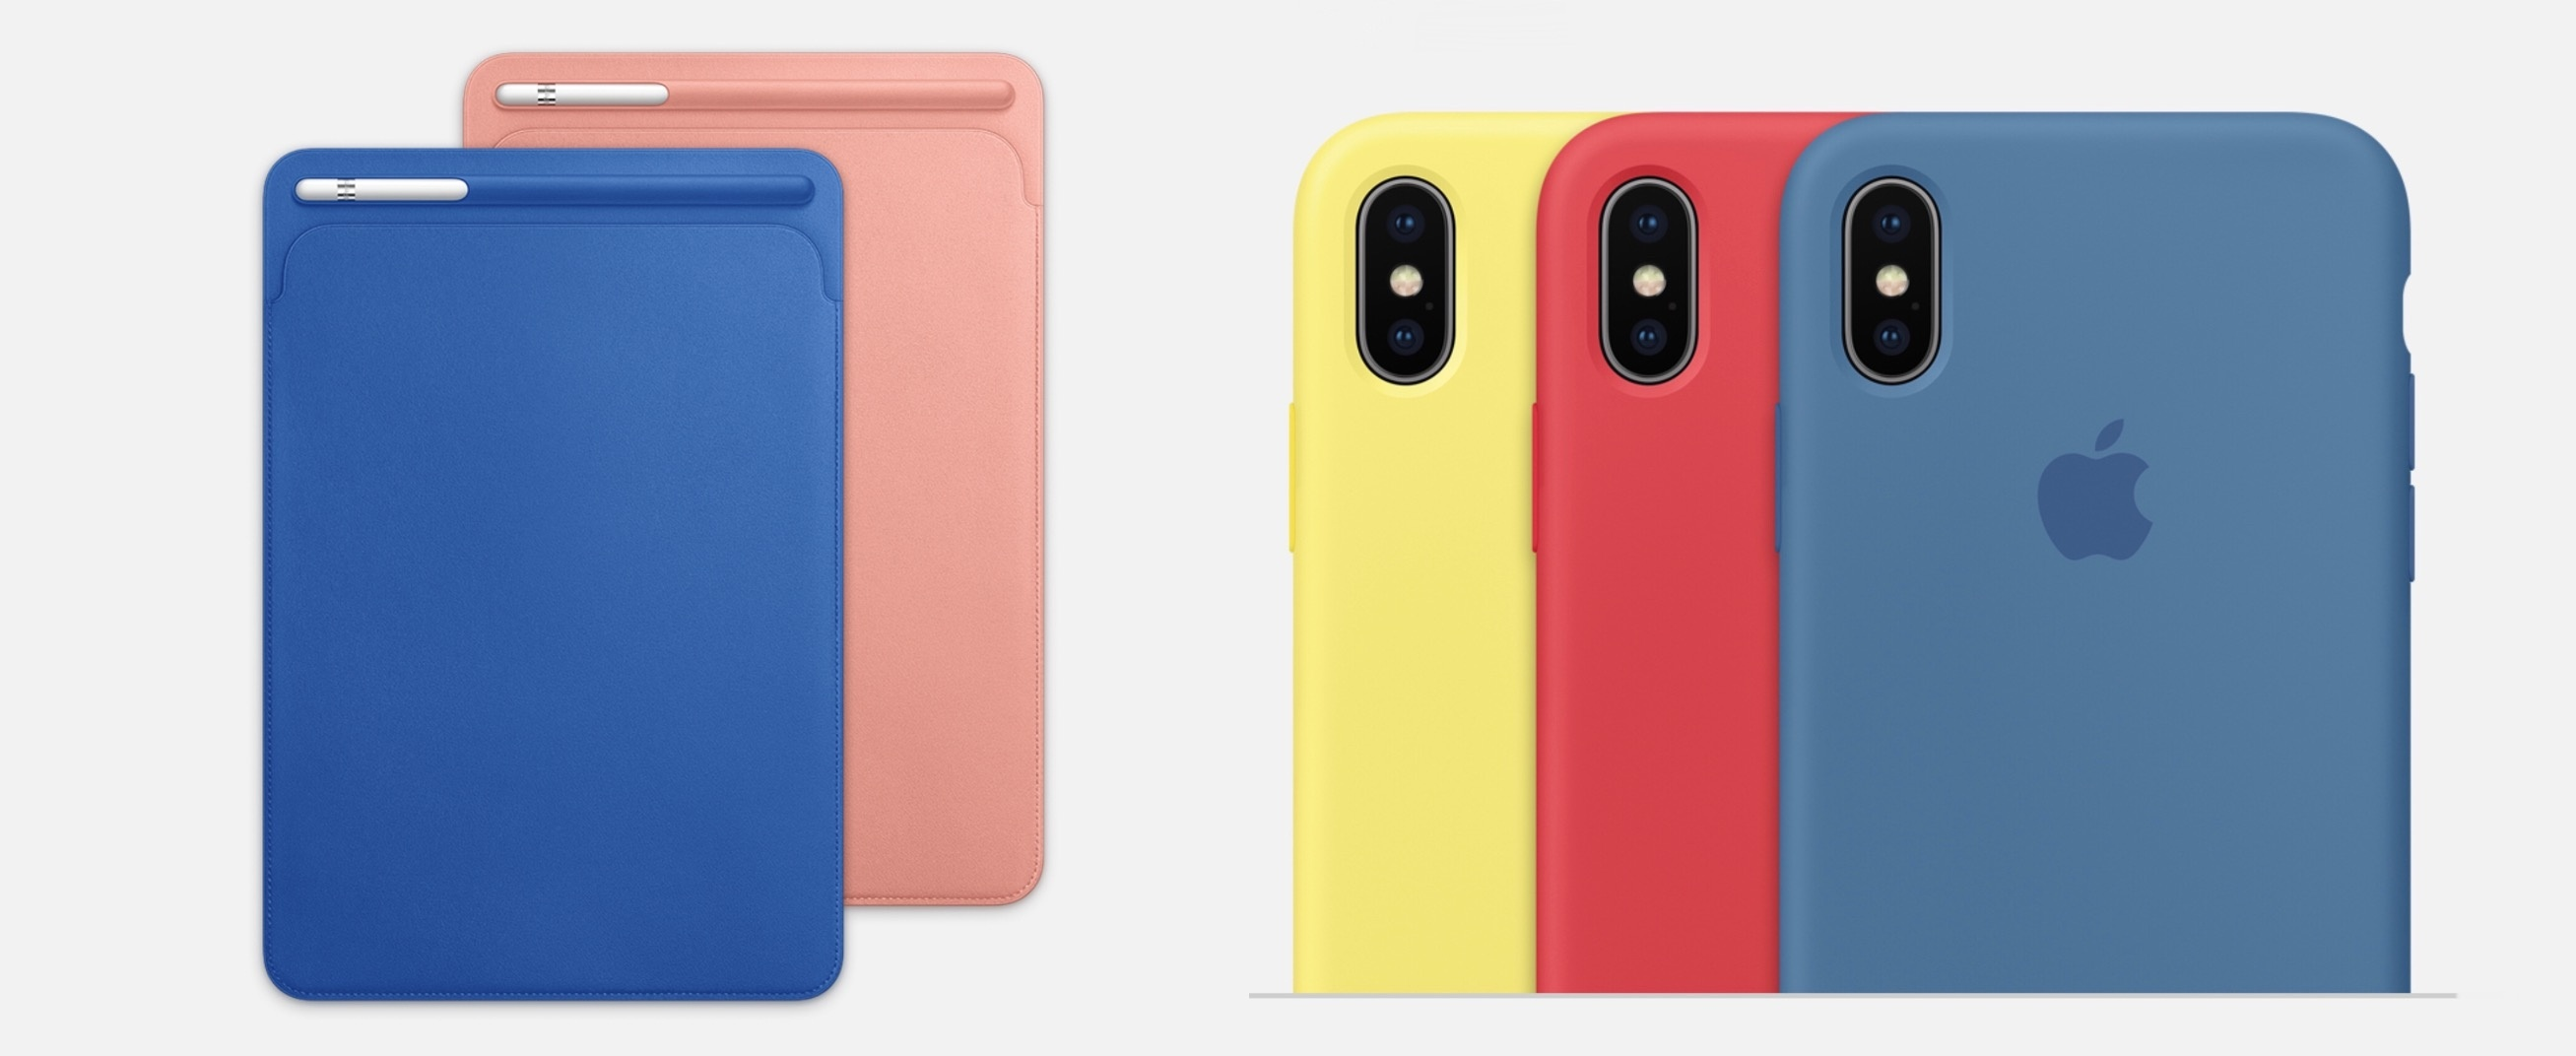 Apple Introduces New Spring Colors for iPhone and iPad